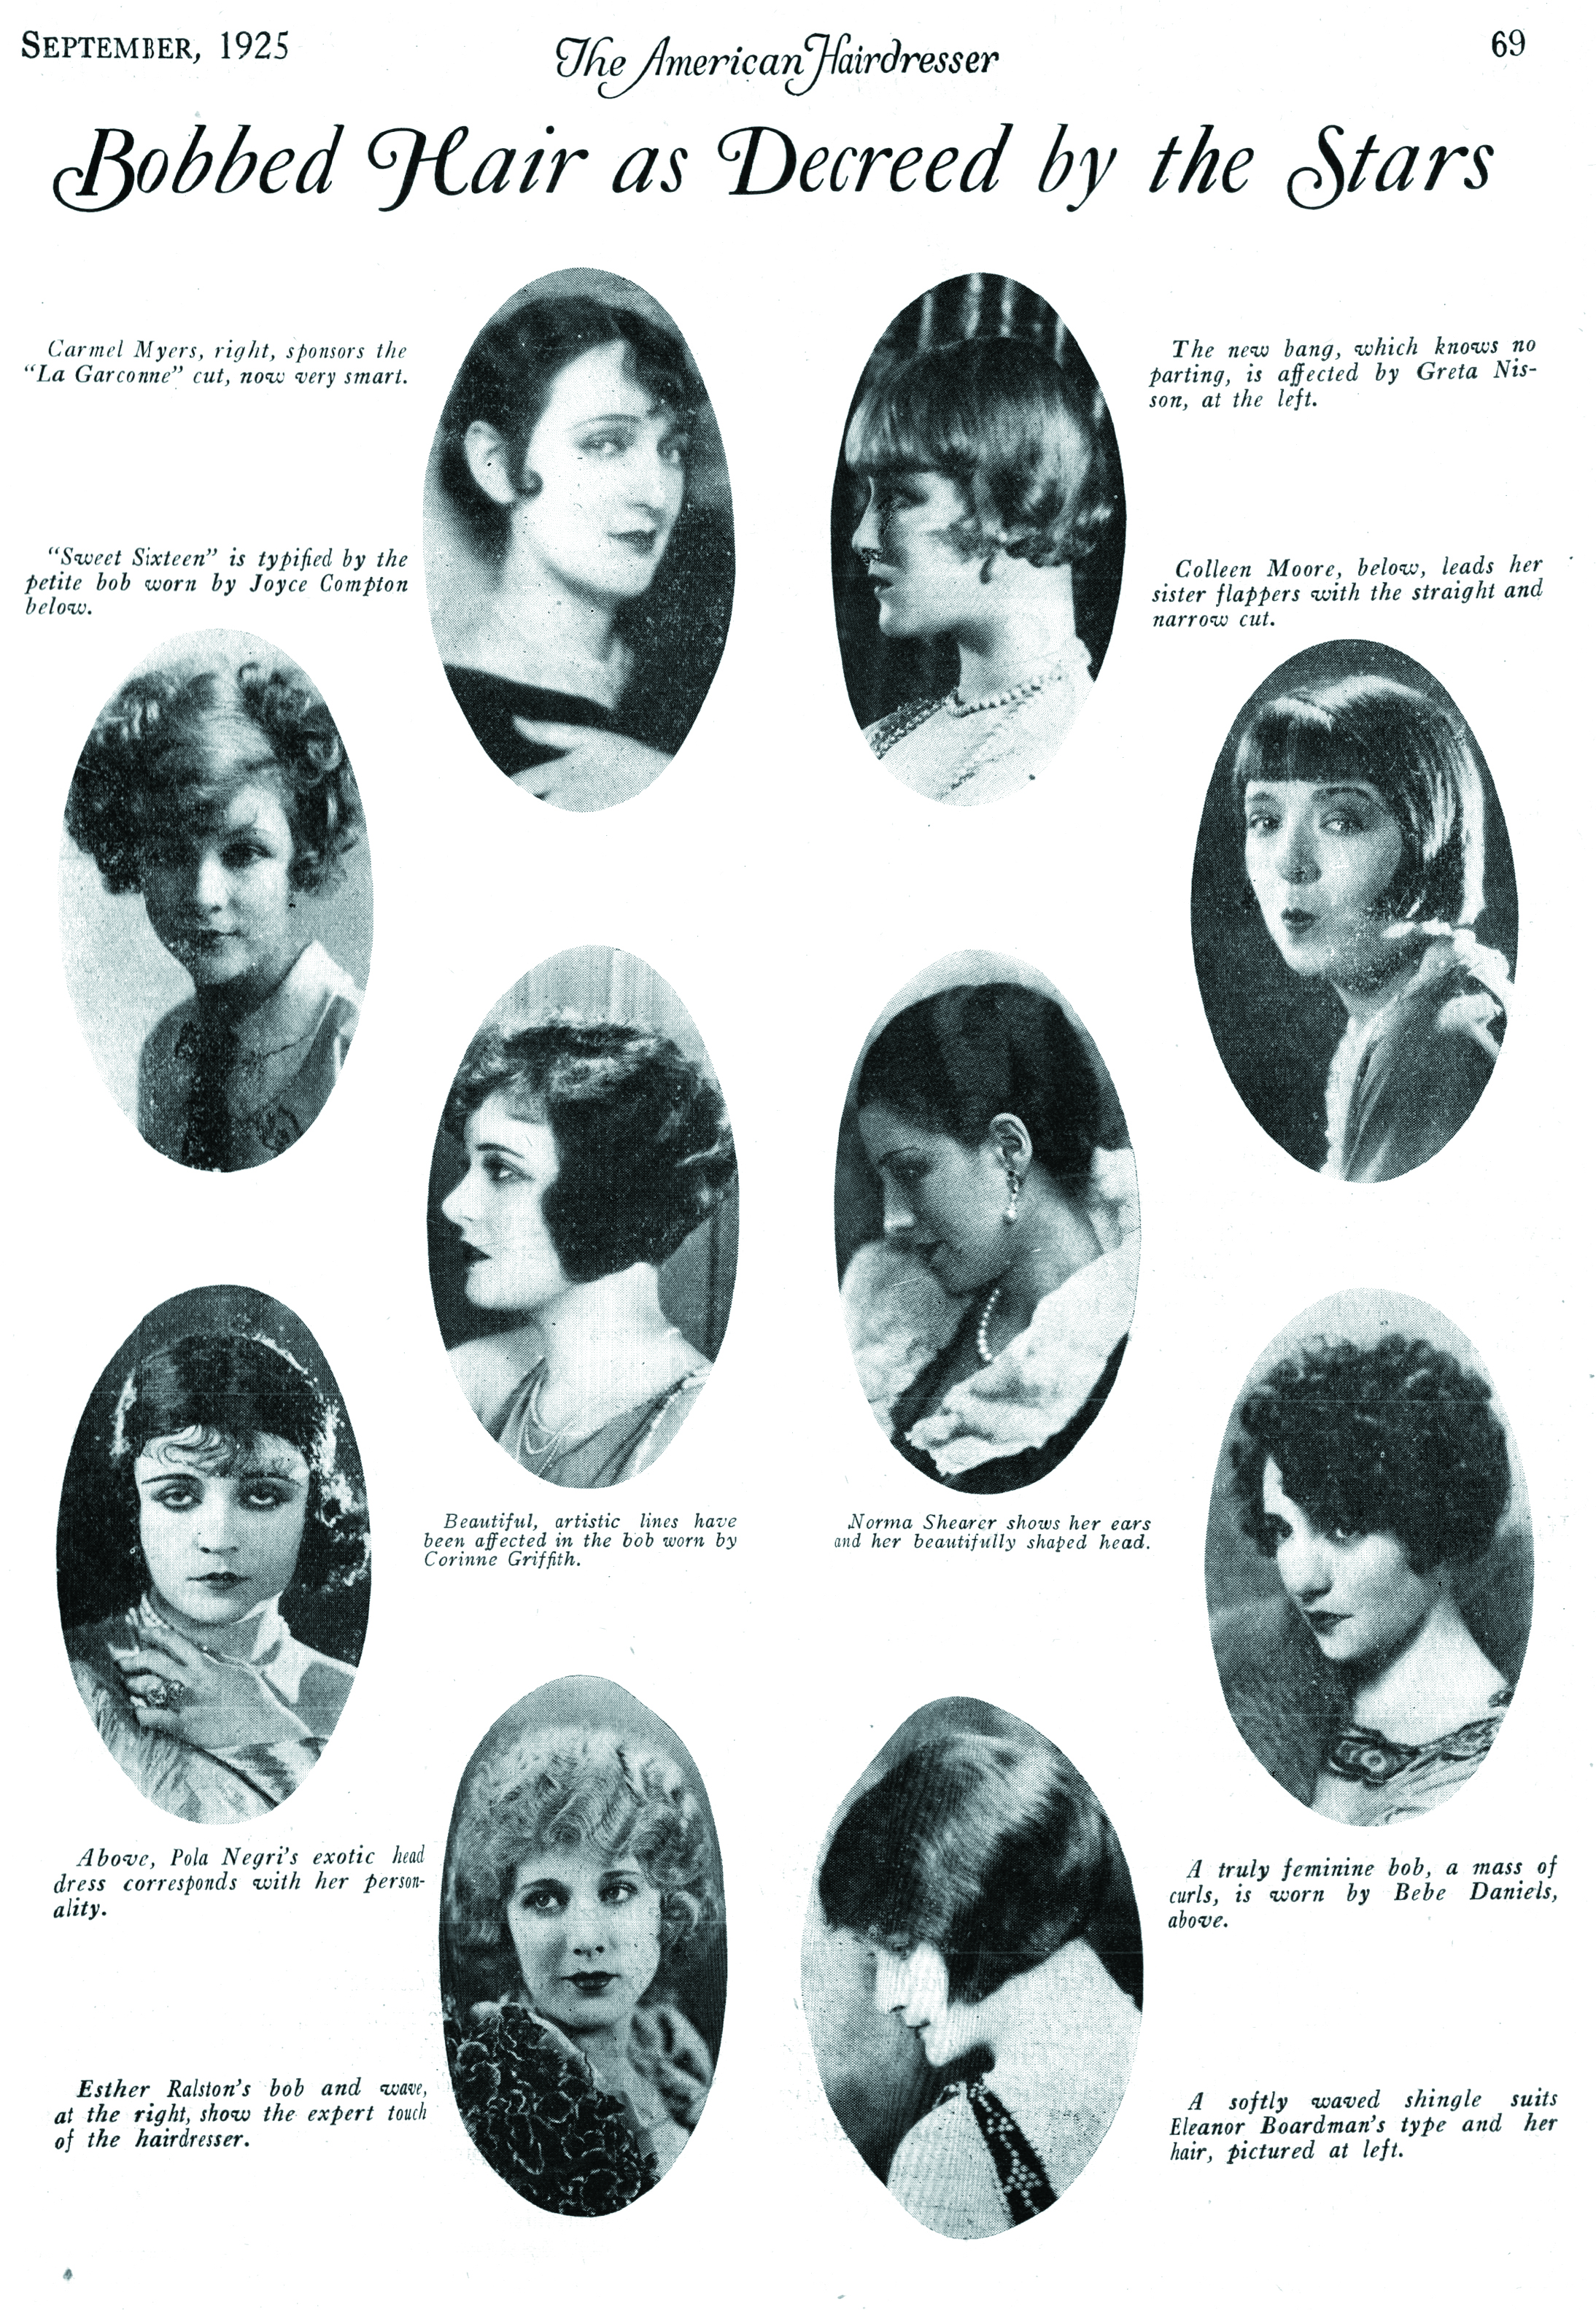 A roundup of various screen stars from our September 1925 issue showing off their take on the bob.